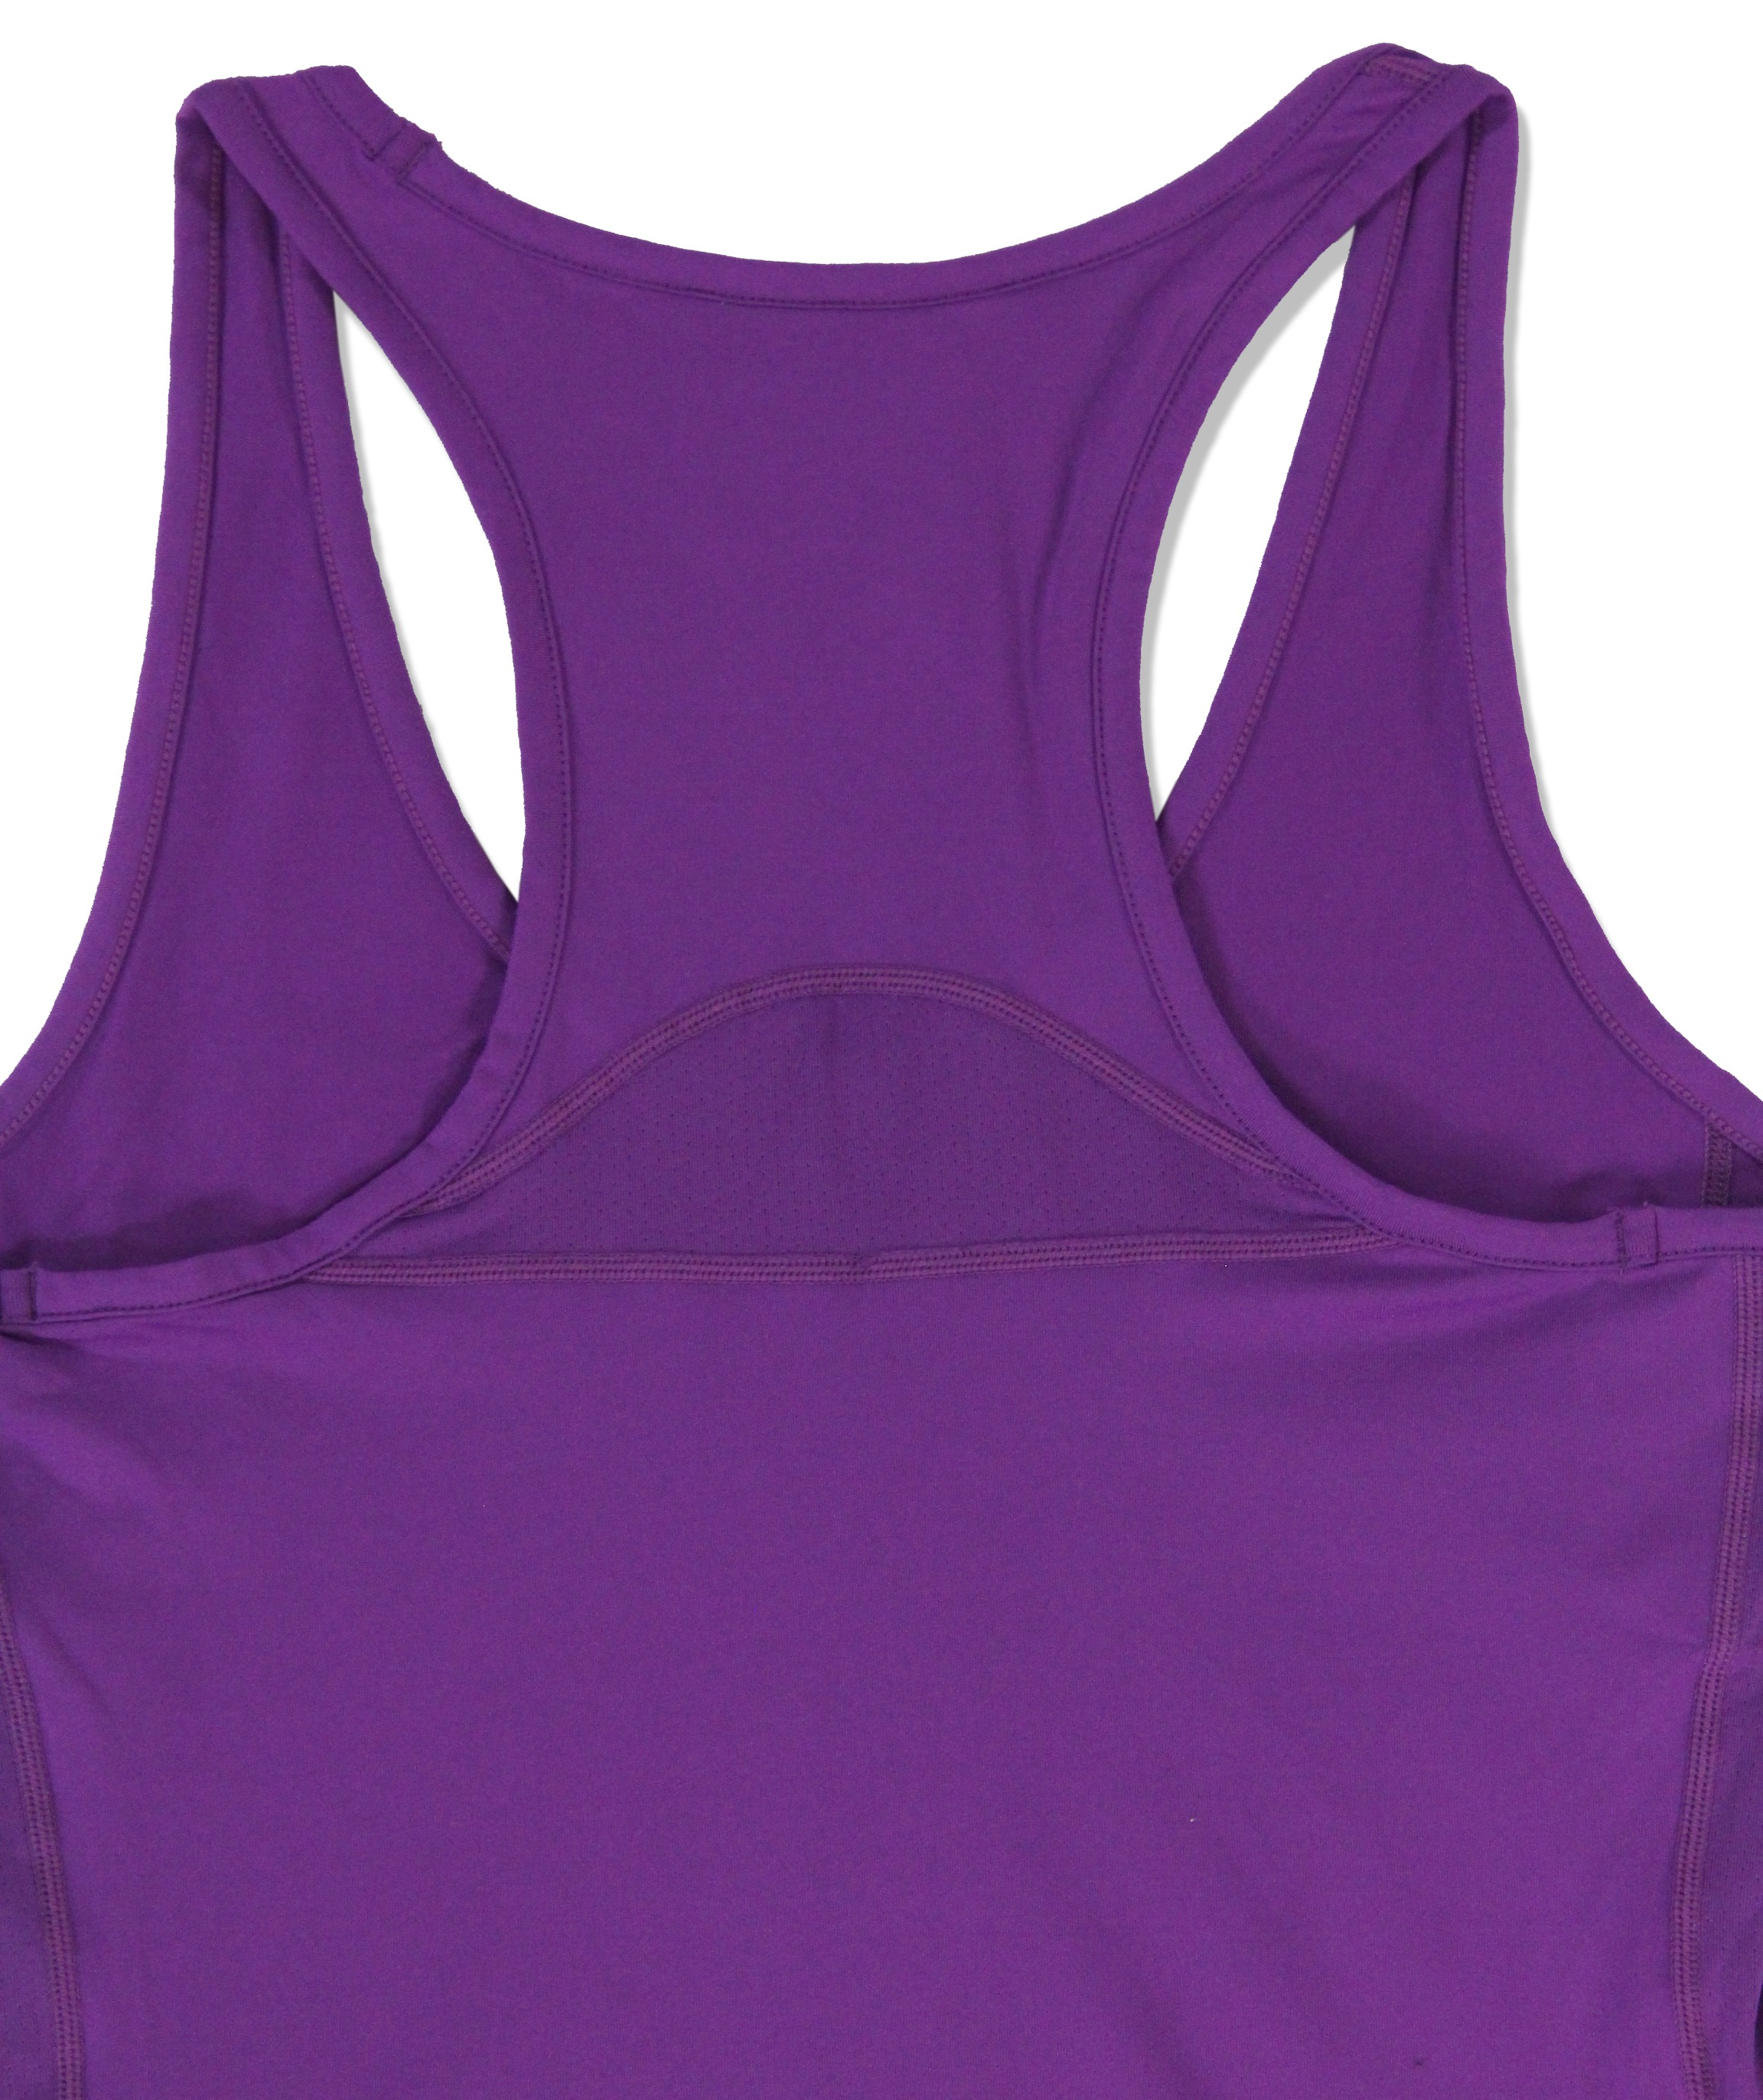 Asics-NEW-Solid-Tone-Women-039-s-Performance-Racerback-ASX-Dry-Tank-Top thumbnail 9